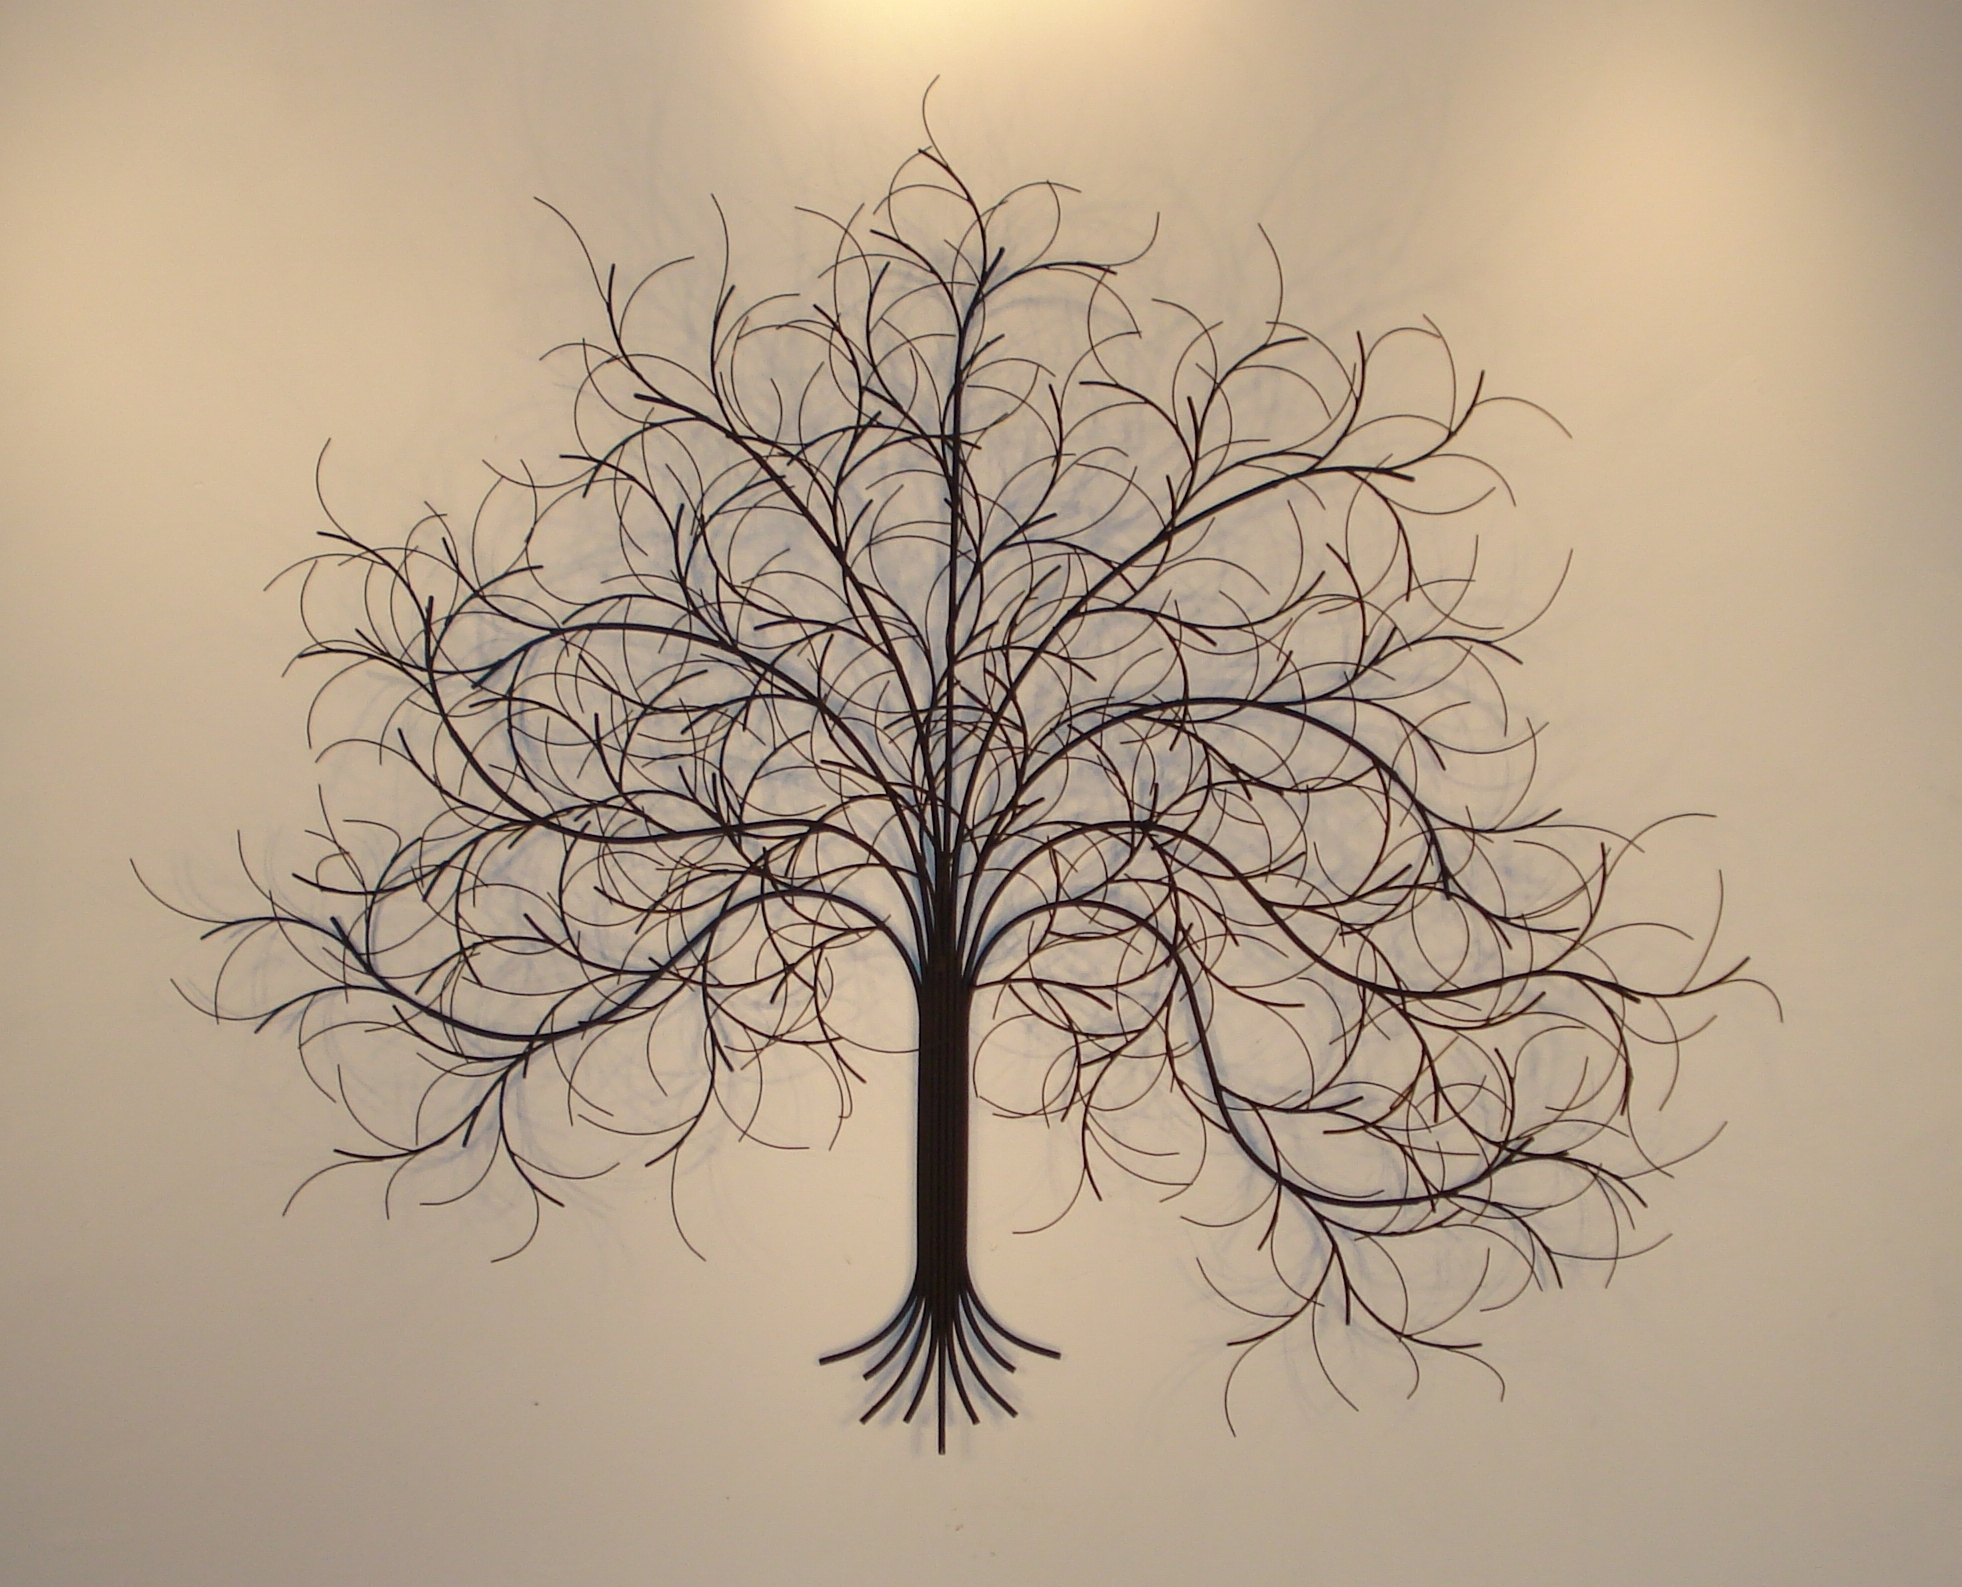 March Tree Metal Wall Art – Metal Sculpture And Wall Decor – Gurtan With Regard To Cheap Metal Wall Art (View 13 of 20)